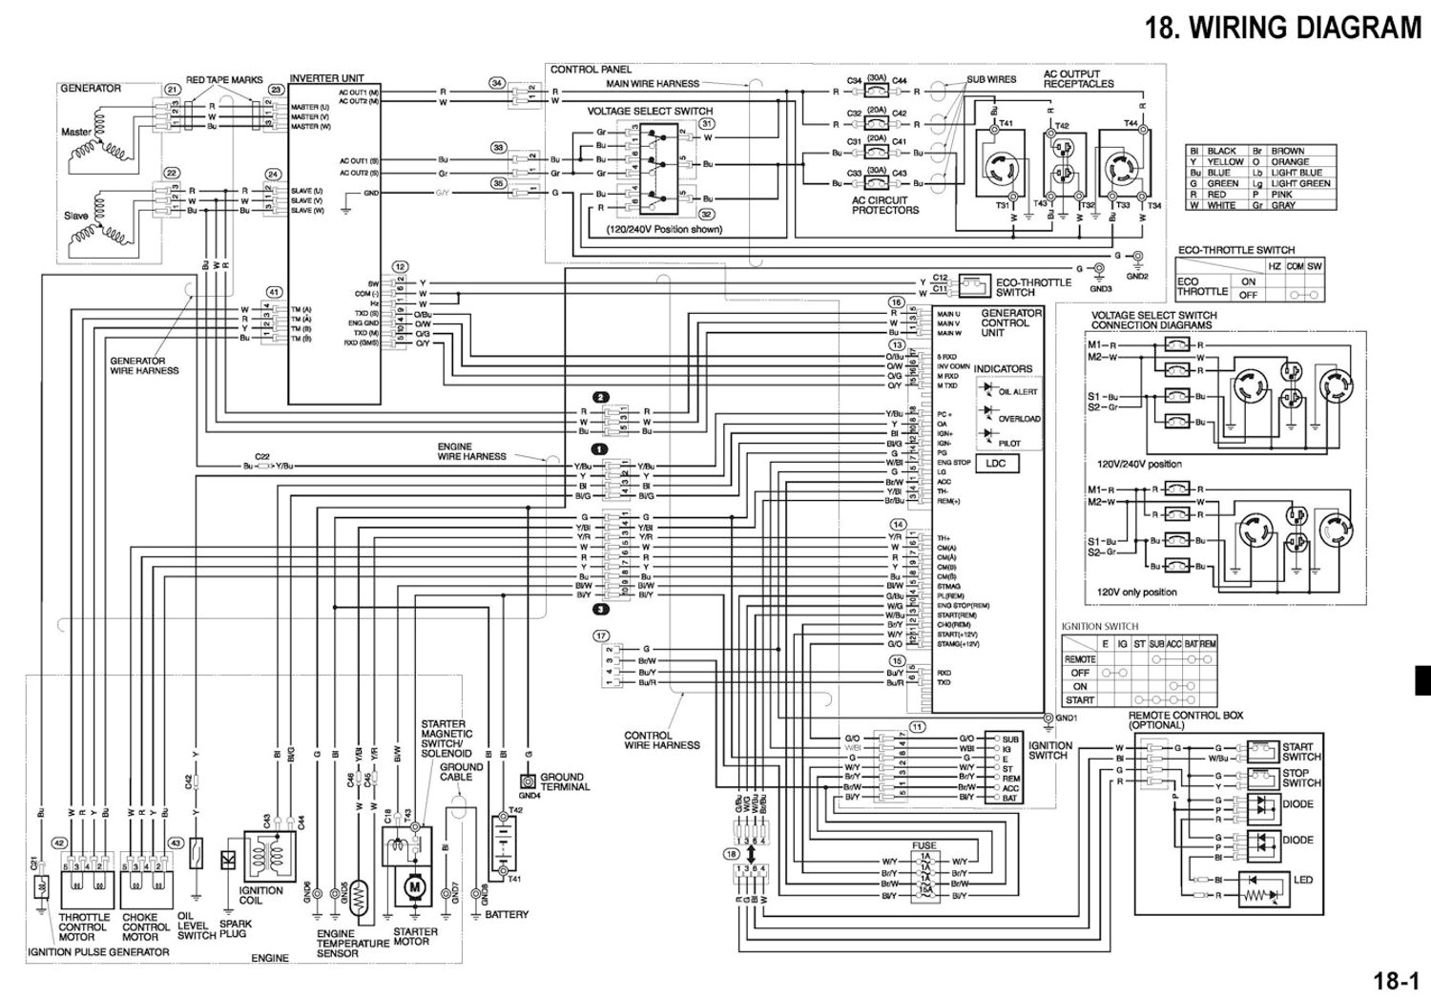 DIAGRAM] Honda Ex5500 Wiring Diagram FULL Version HD Quality Wiring Diagram  - BOMBDIAGRAM.GENAZZANOBUONCONSIGLIO.IT